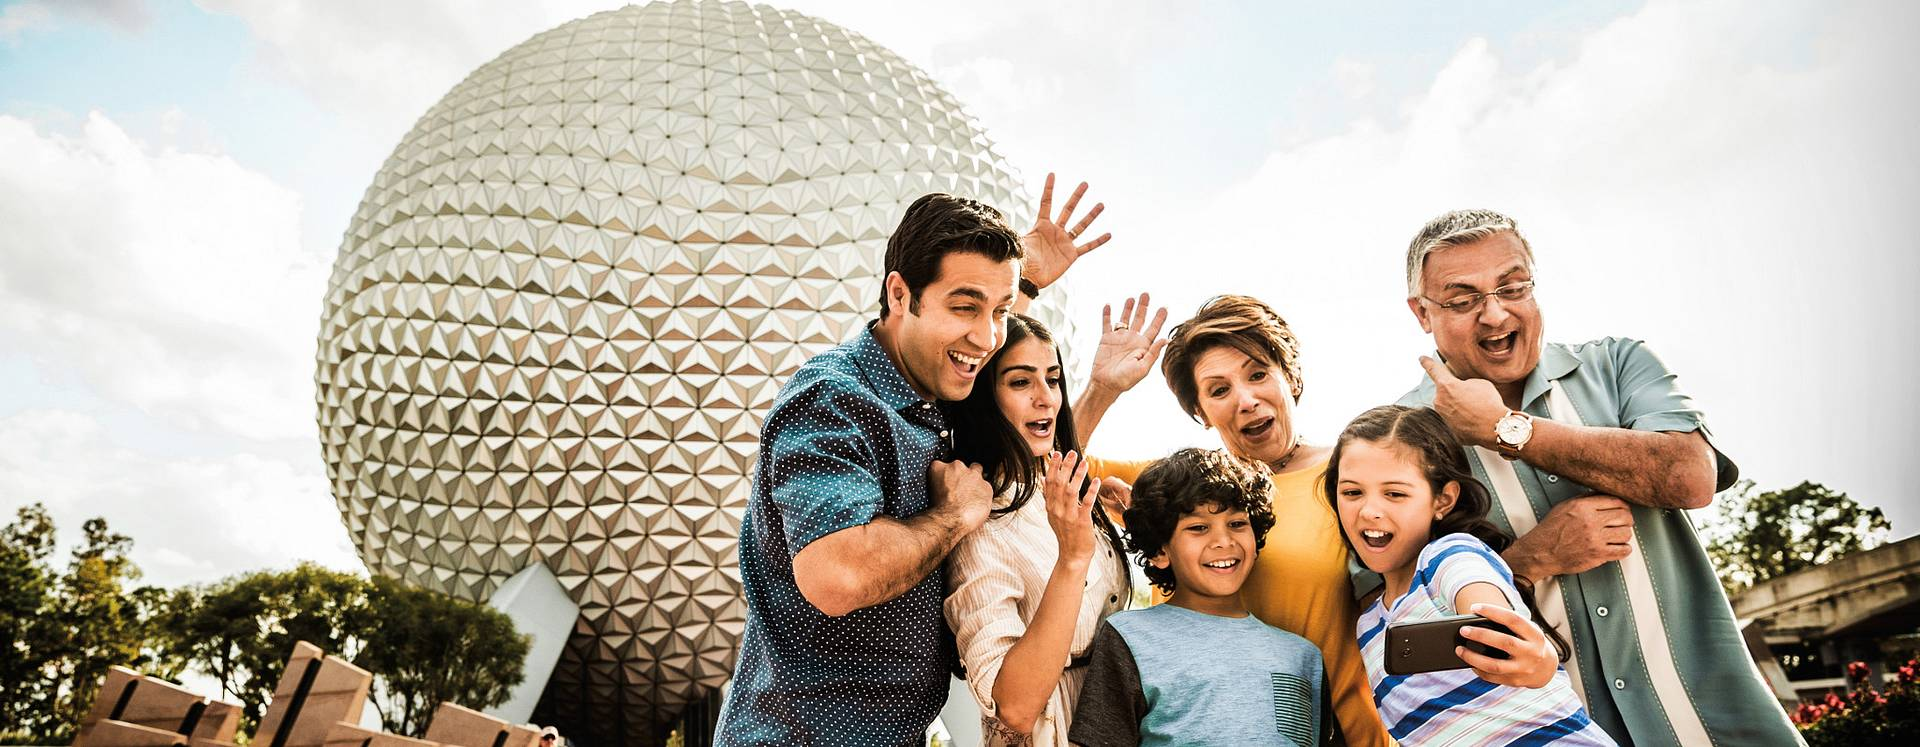 Family posing for a selfie in front of the Spaceship Earth globe at Epcot